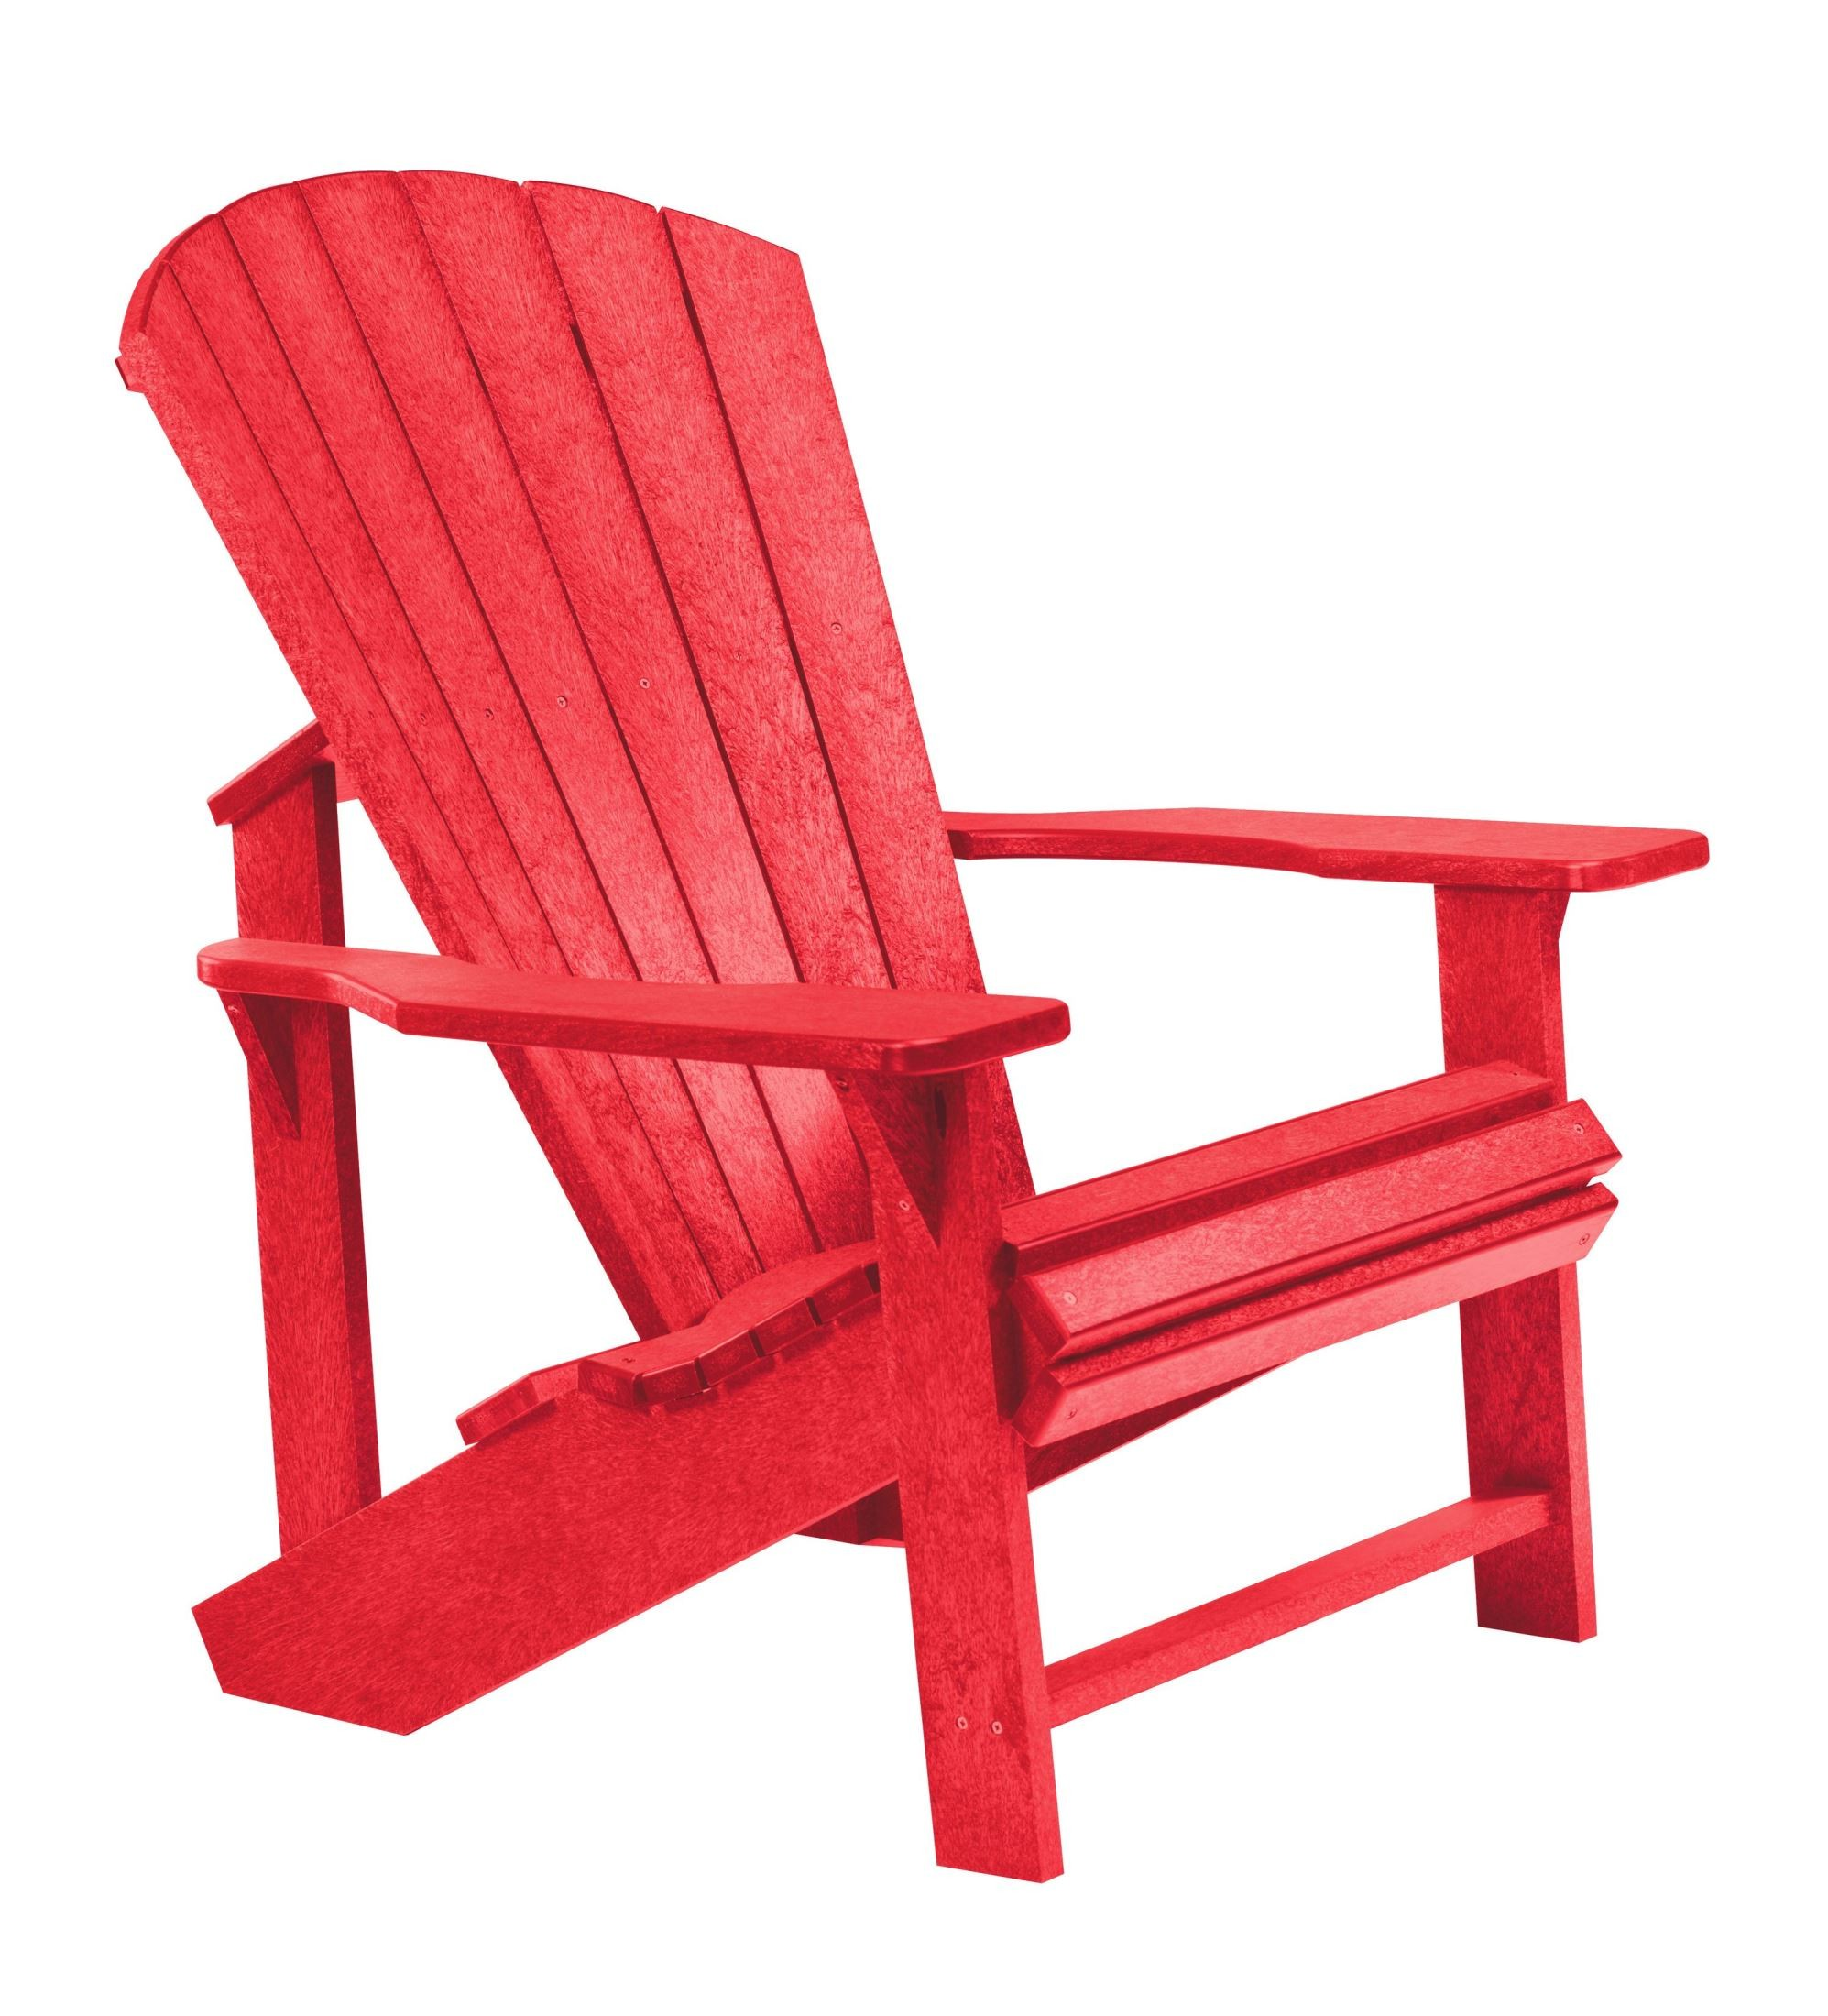 Generations Red Adirondack Chair from CR Plastic C0101